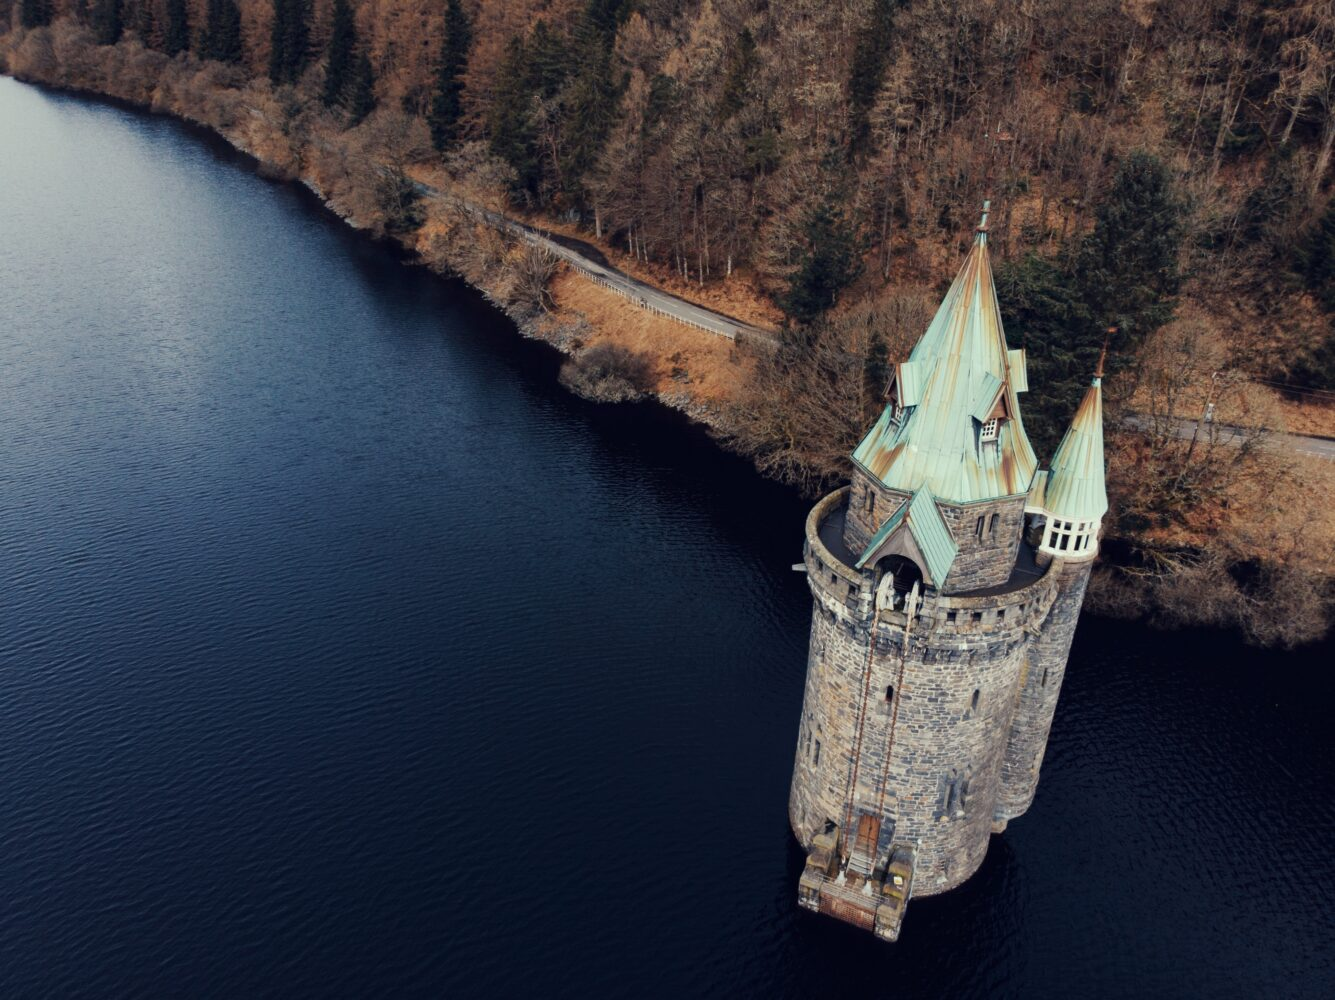 Lake Vyrnwy - Walking, Picnics and So Much More